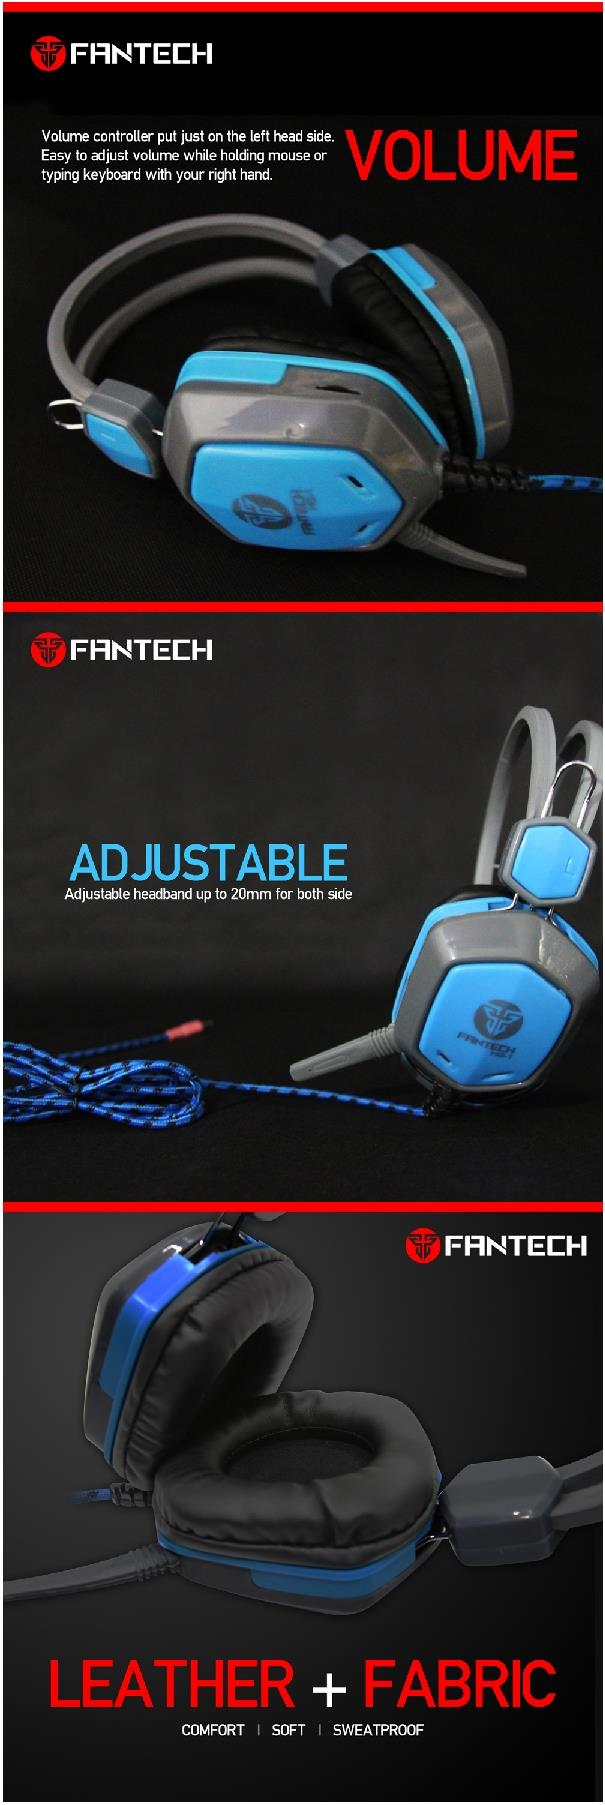 Fantech Kraken HG1 40mm Driver Wired Gaming Headset